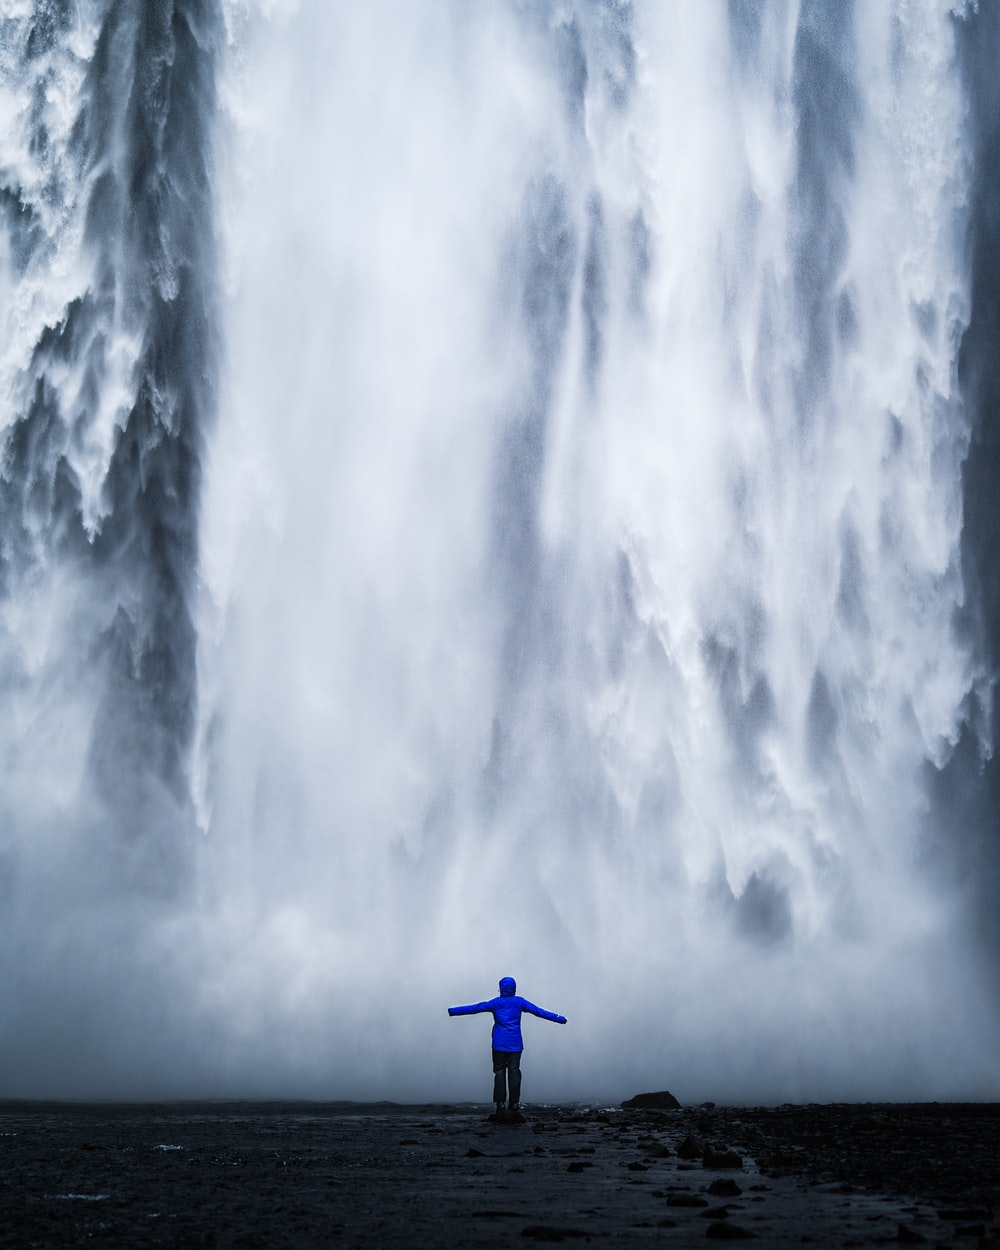 person wearing blue jacket standing in front of waterfalls